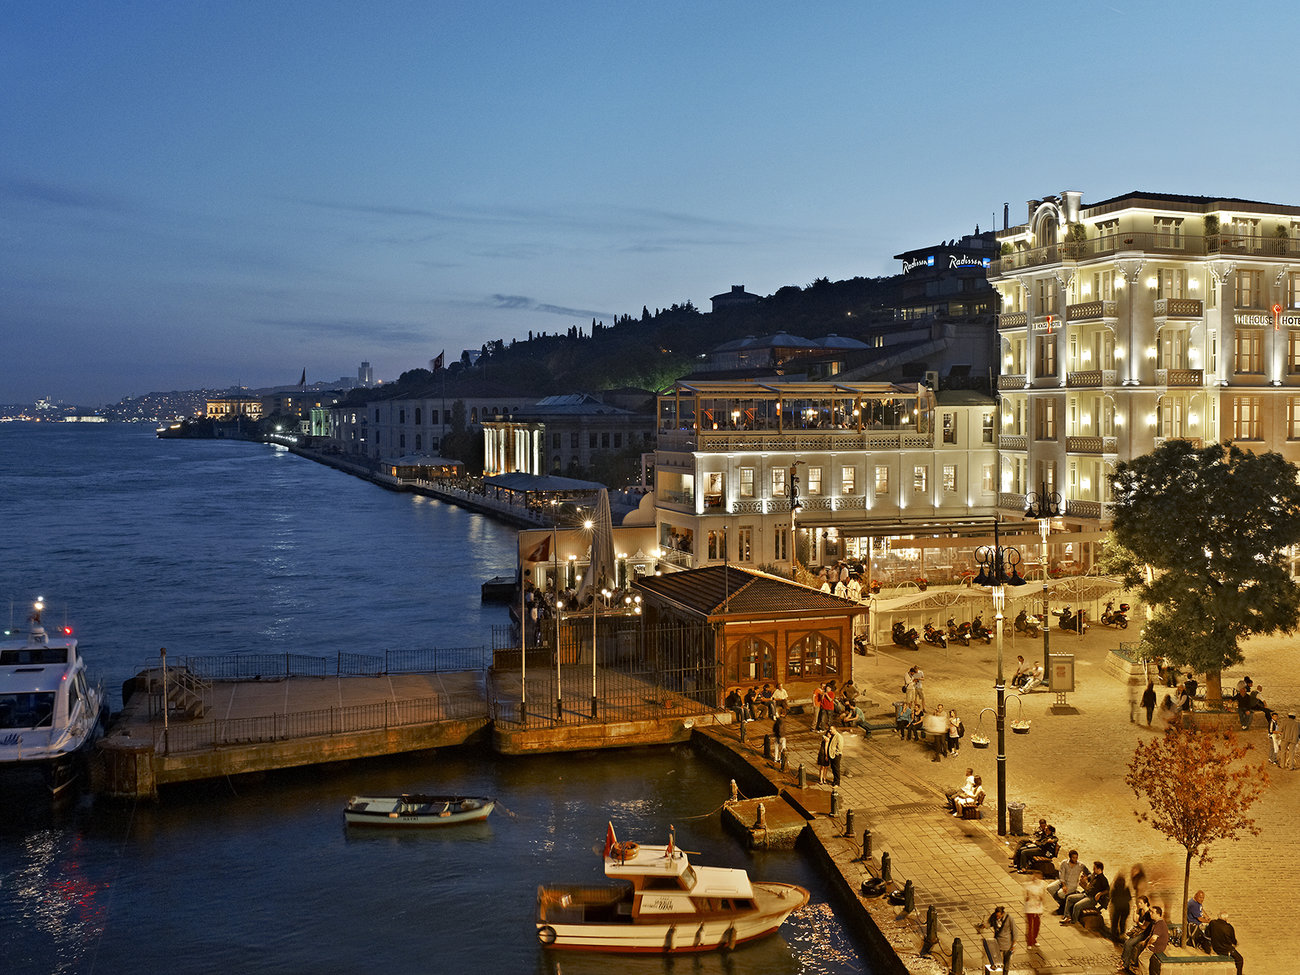 House Hotel Ortakoy in Istanbul